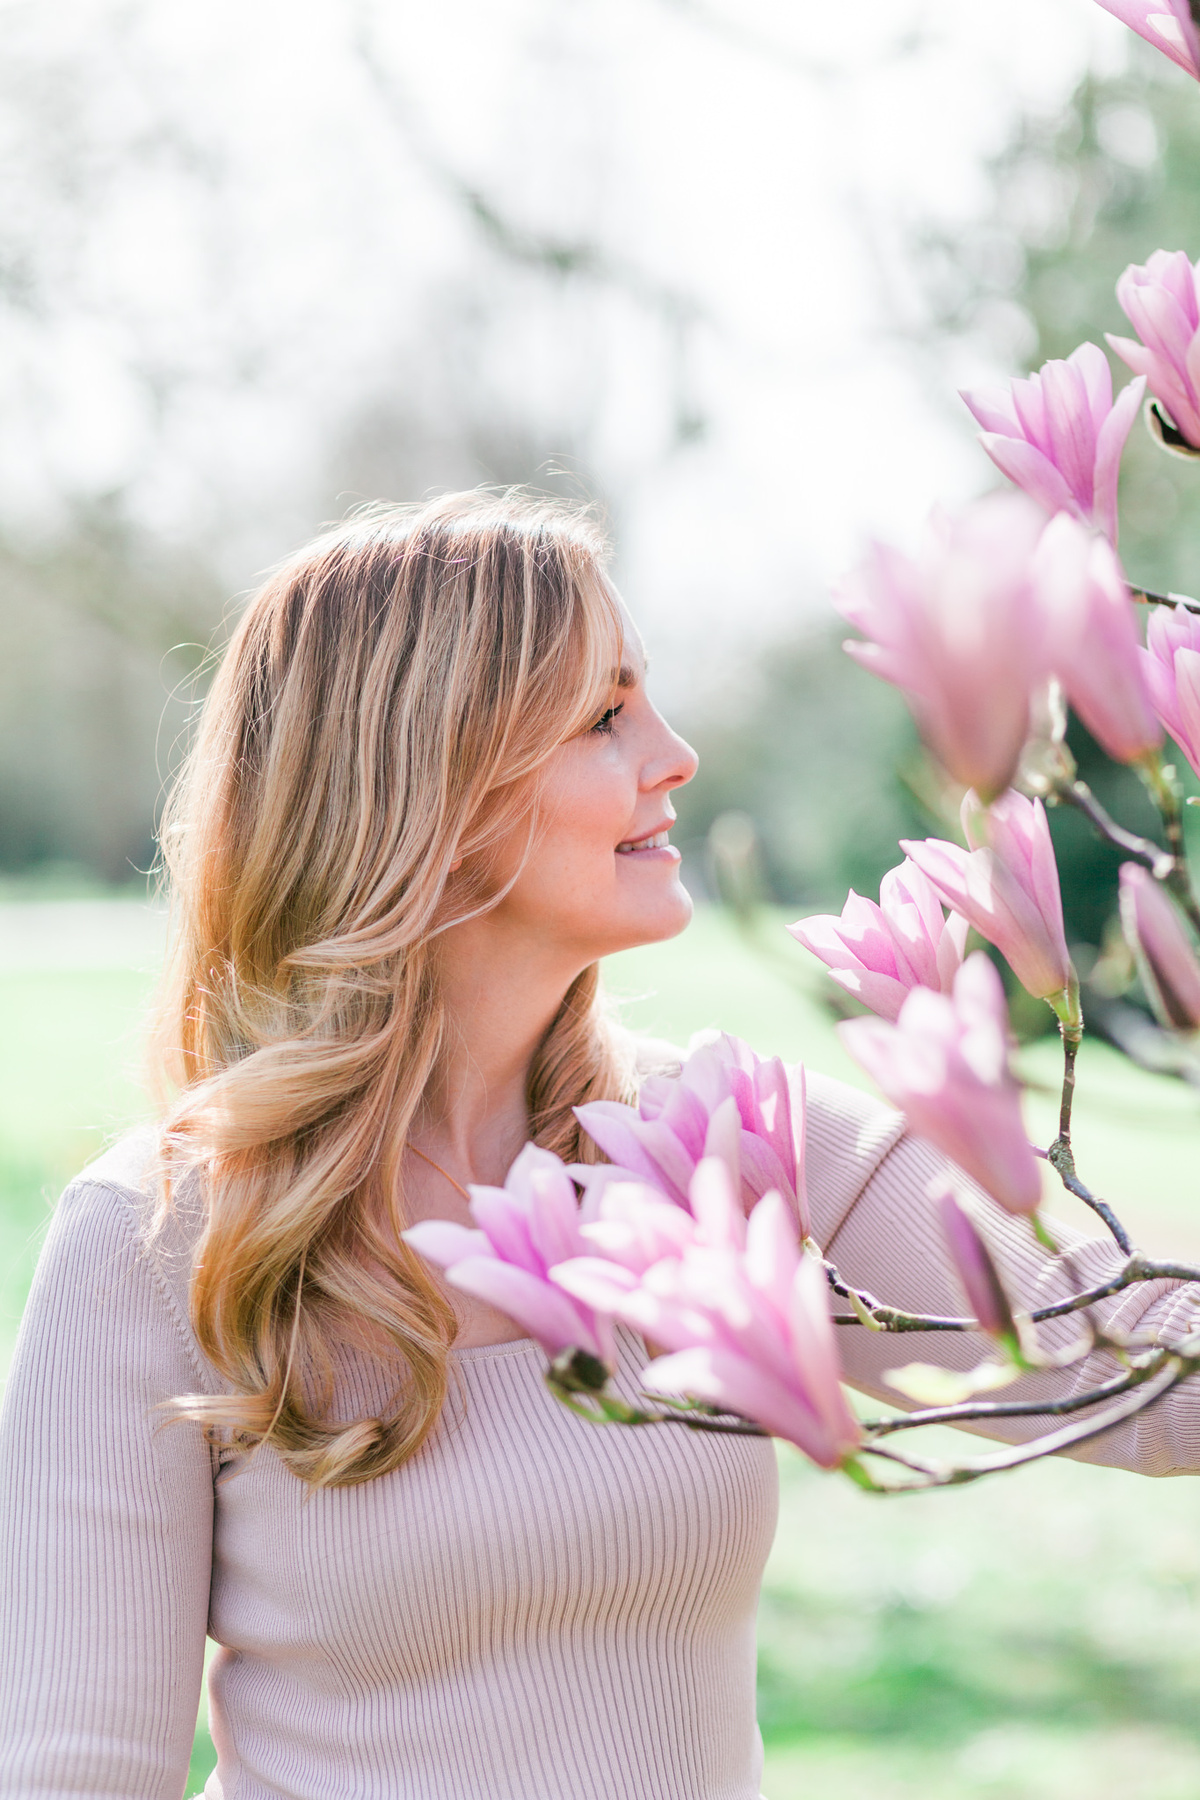 Branding headshot photo by Emma Jackson Photography of a woman in a neutral top standing amongst pink magnolia flowers smiling